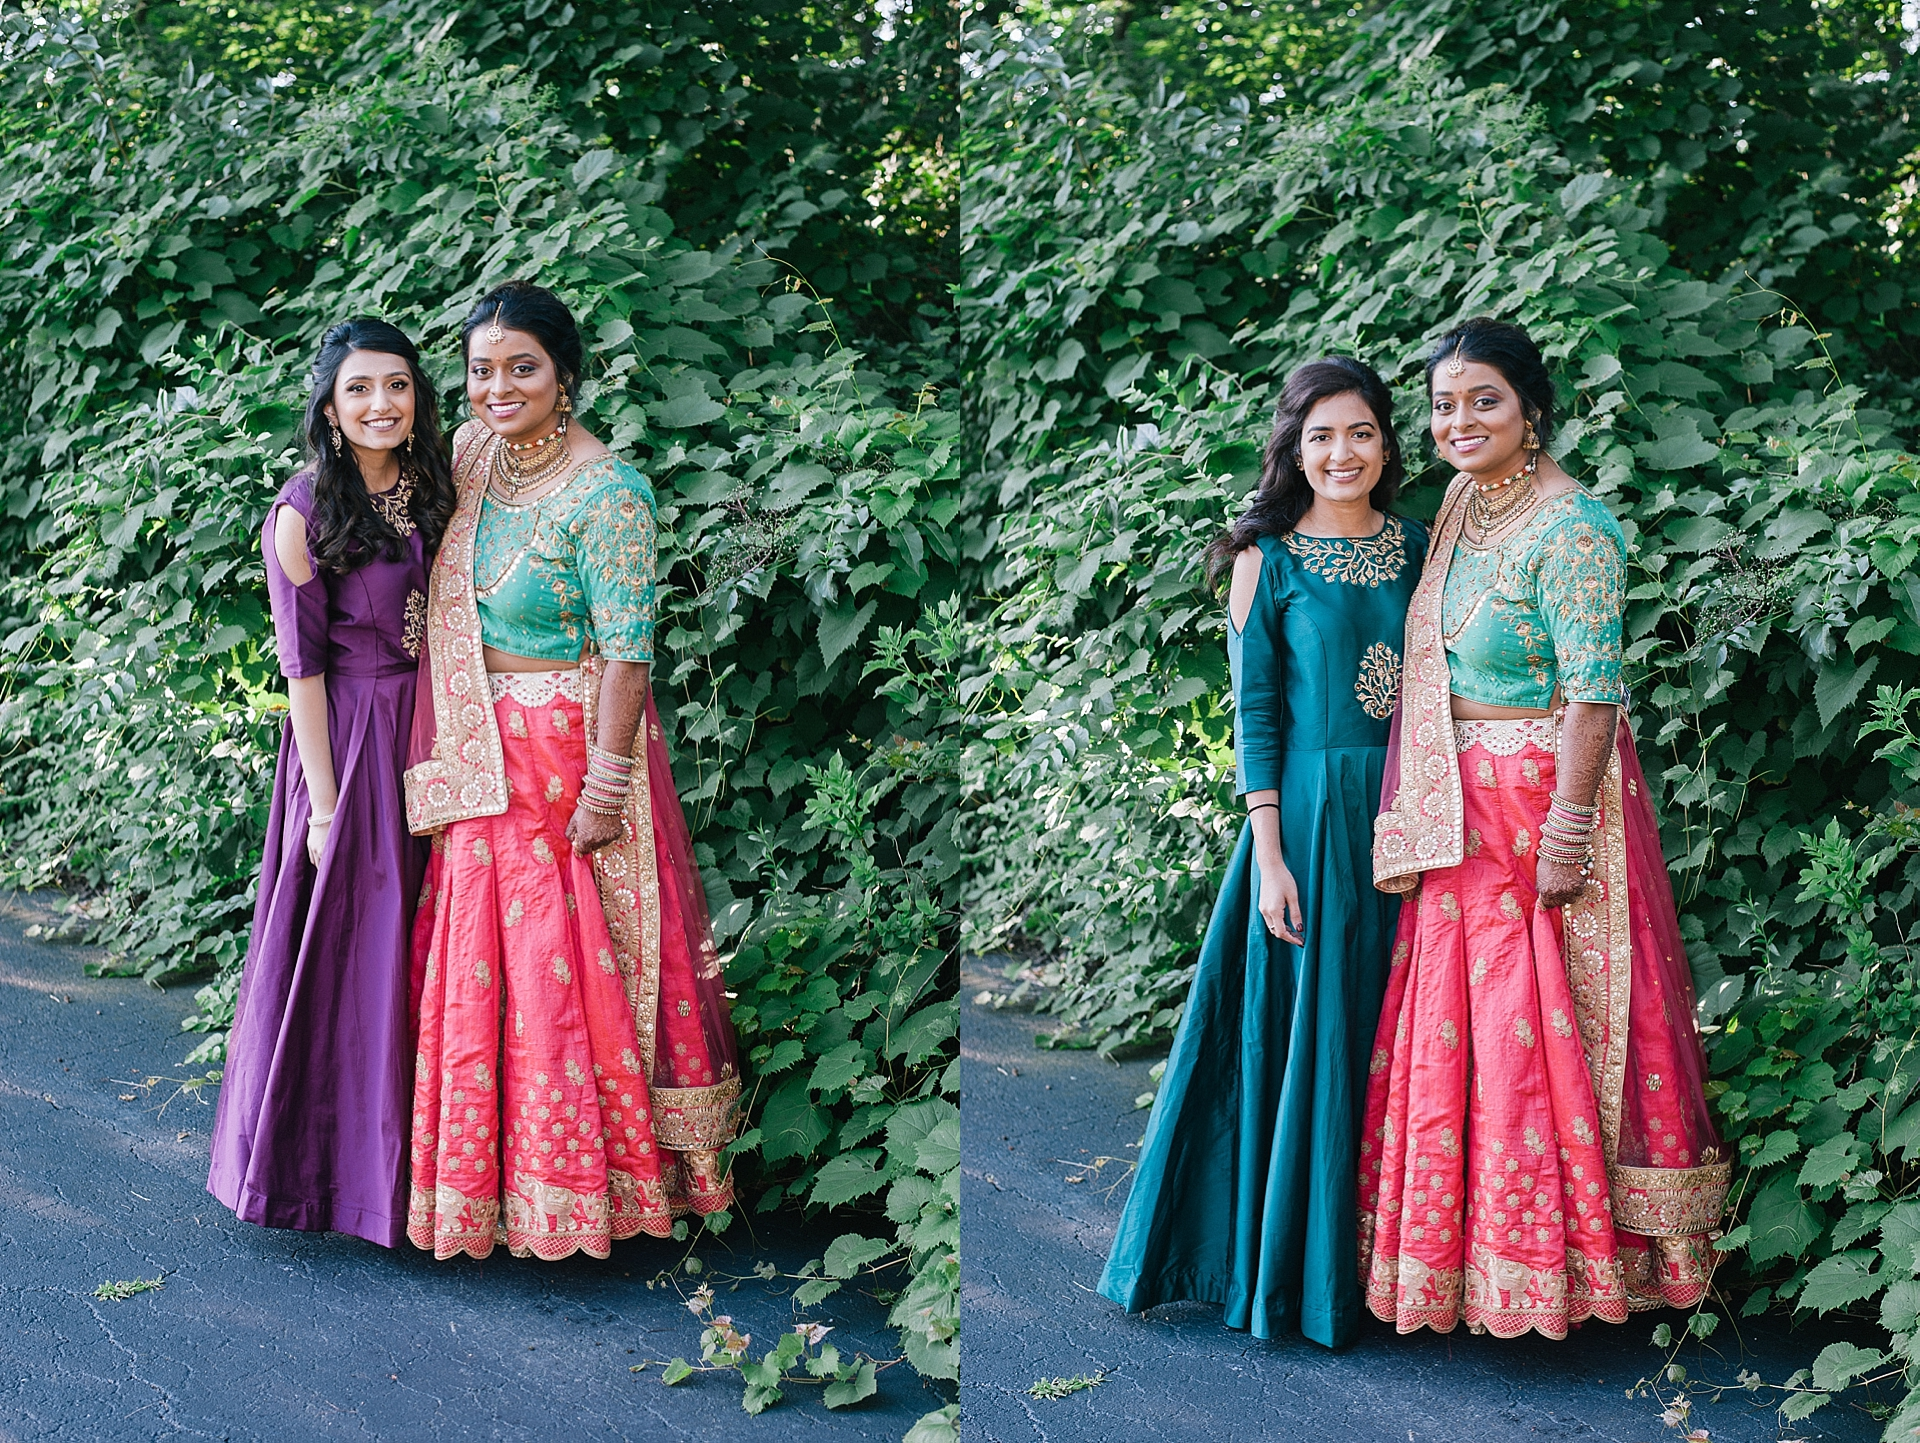 Prexa_Harry_Columbus_Crown_Plaza_Indian_Wedding0035.jpg